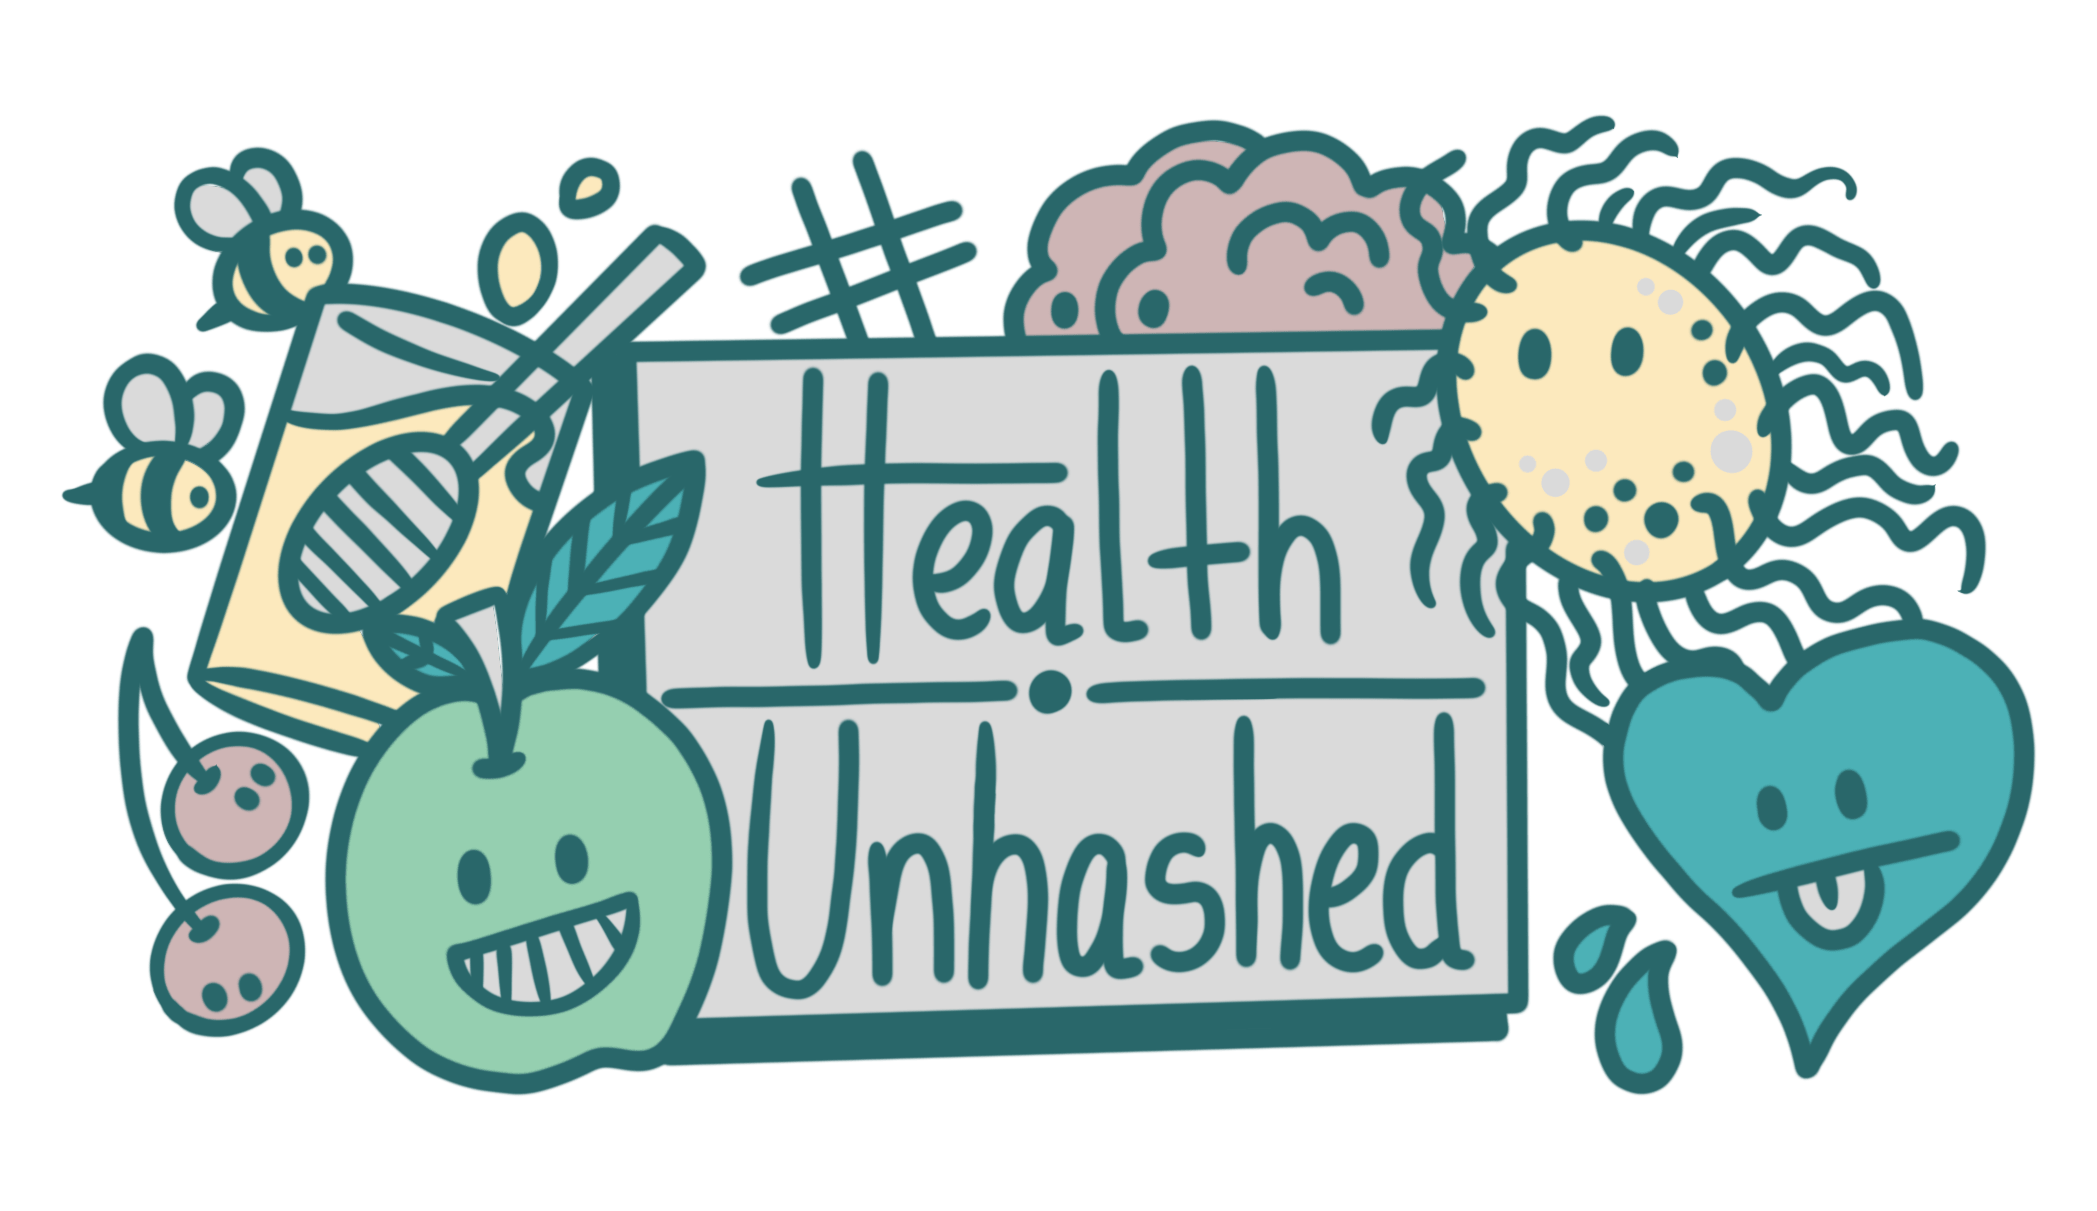 Health Un-Hashed